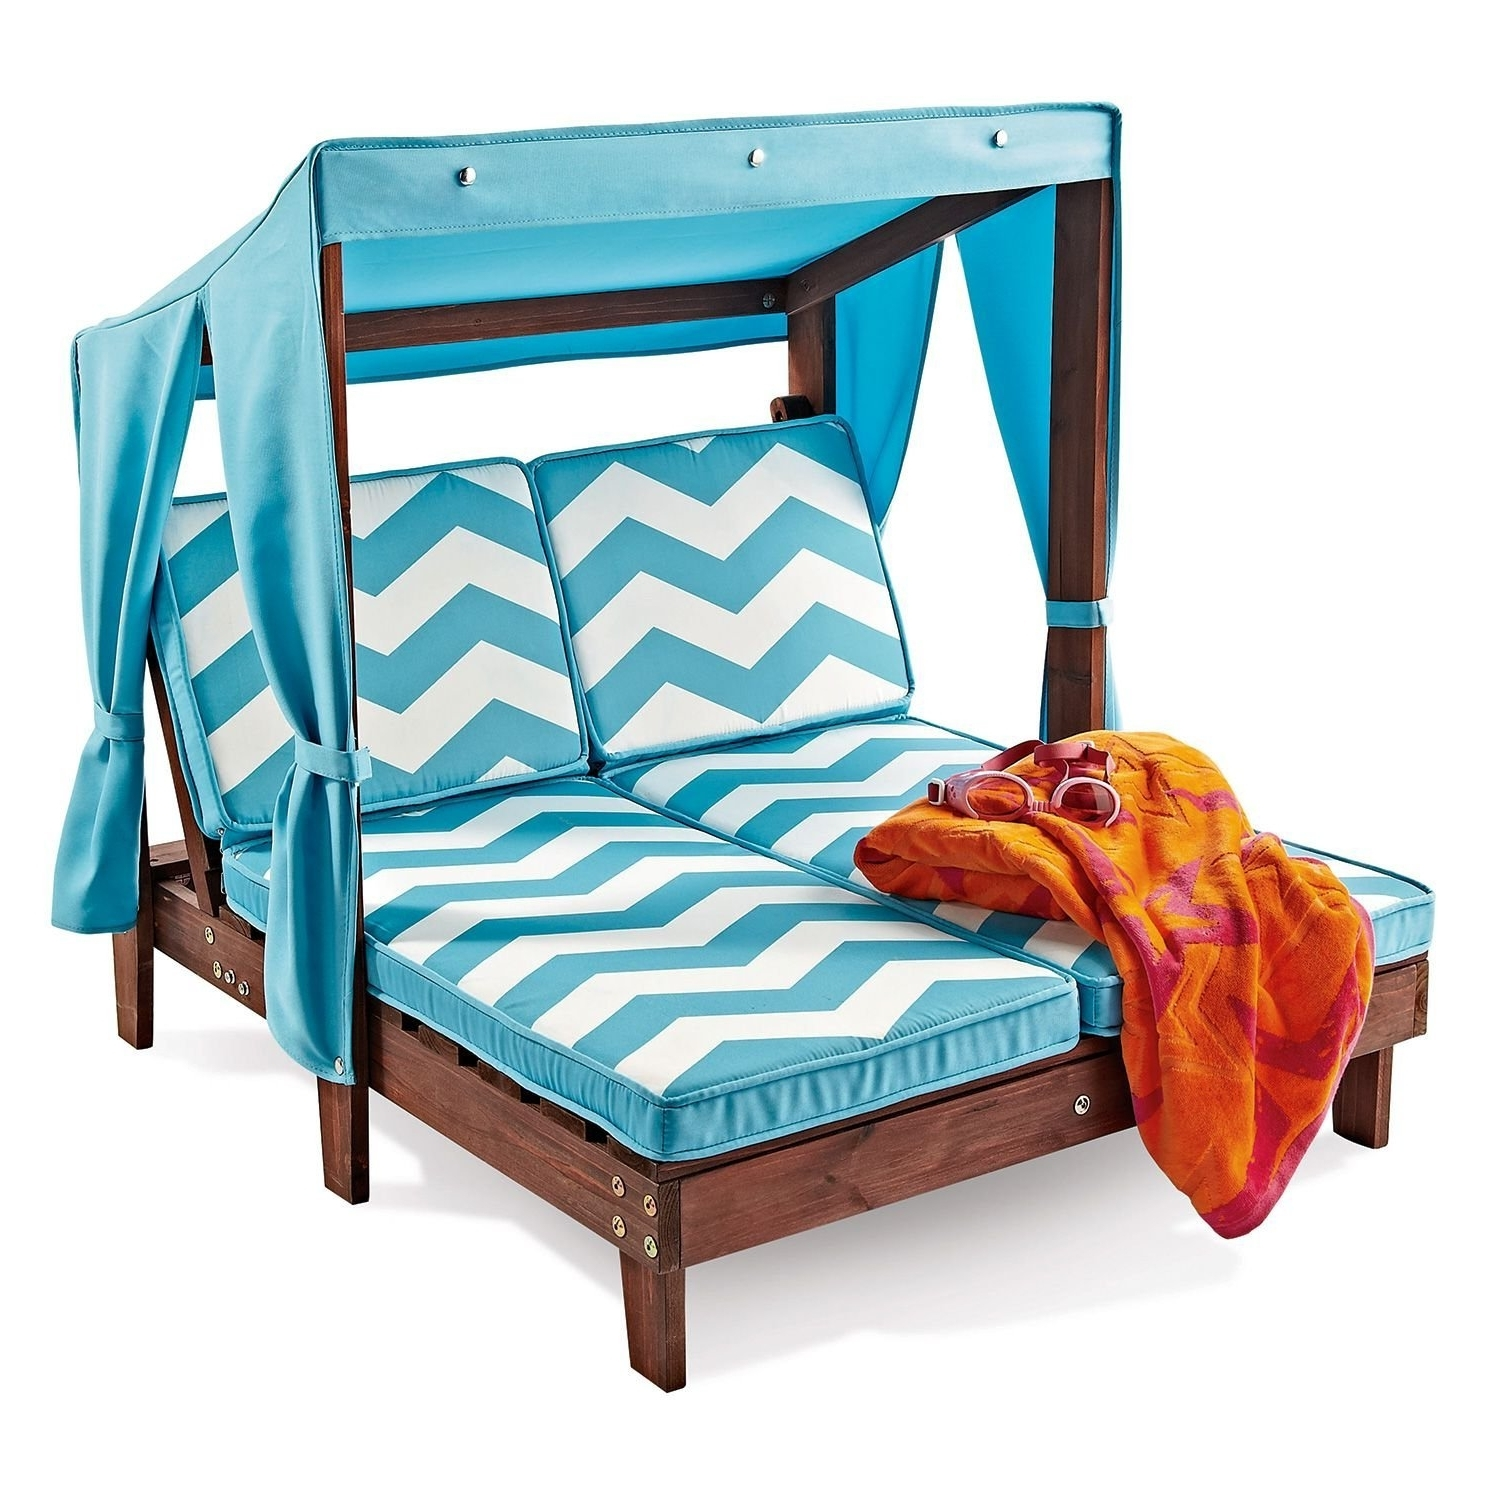 Recent Kidkraft Double Chaise Lounges Intended For Amazon: Outdoor Kid's Double Chaise Lounge Chair W/ Canopy (View 12 of 15)